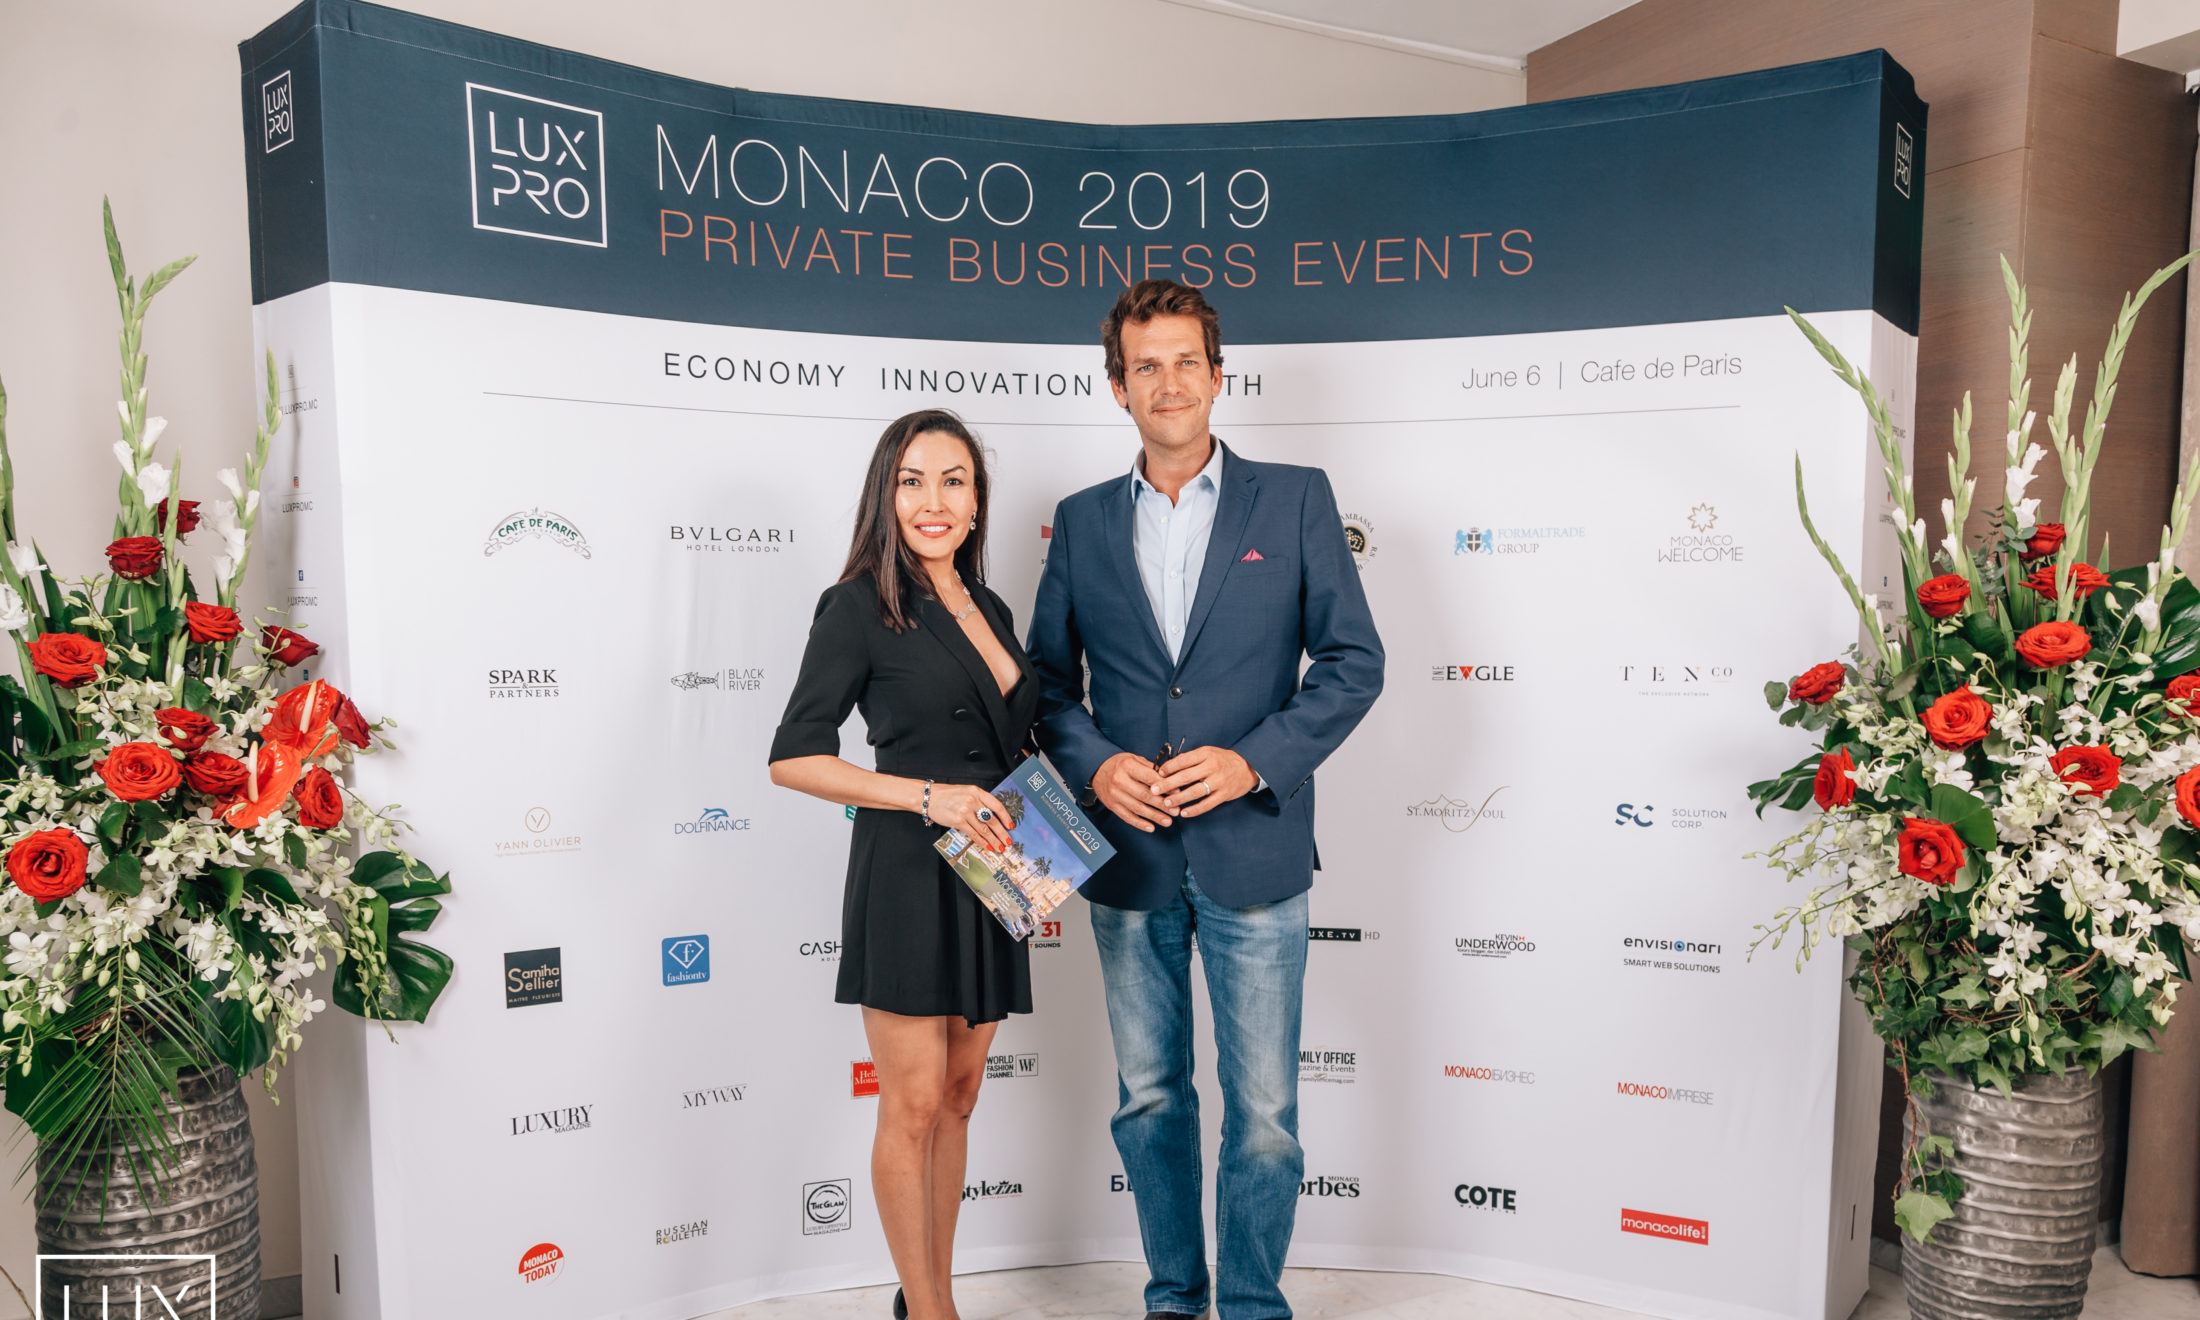 LUXPRO founder Gulshat Uzenbaeva and Christian More, President of the Ambassador's Club